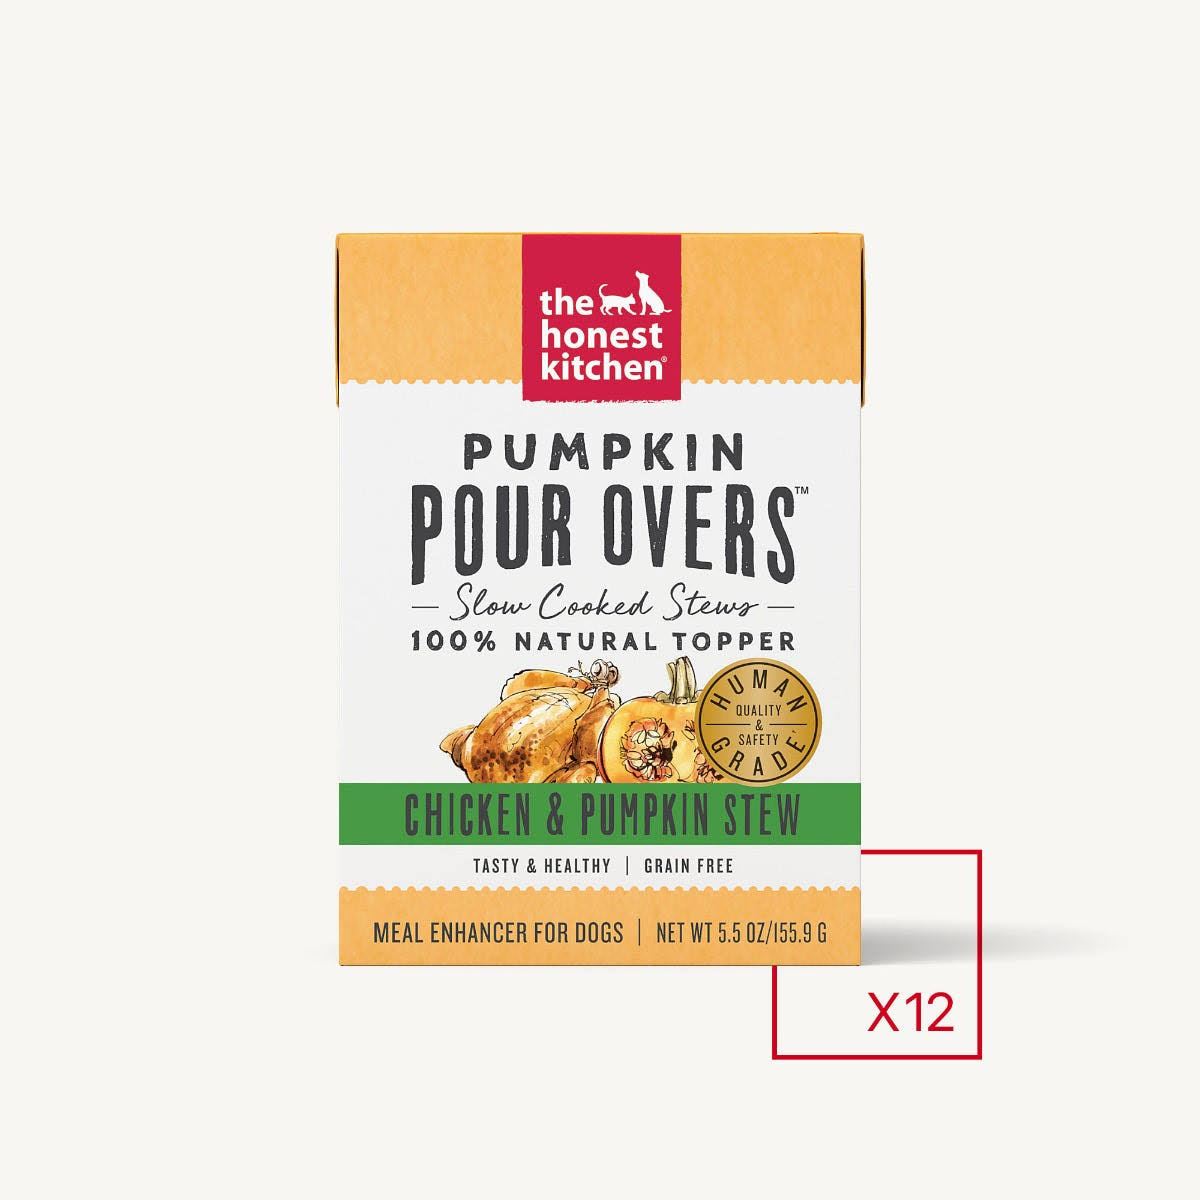 The Honest Kitchen Pumpkin Pour Overs - Chicken & Pumpkin Stew